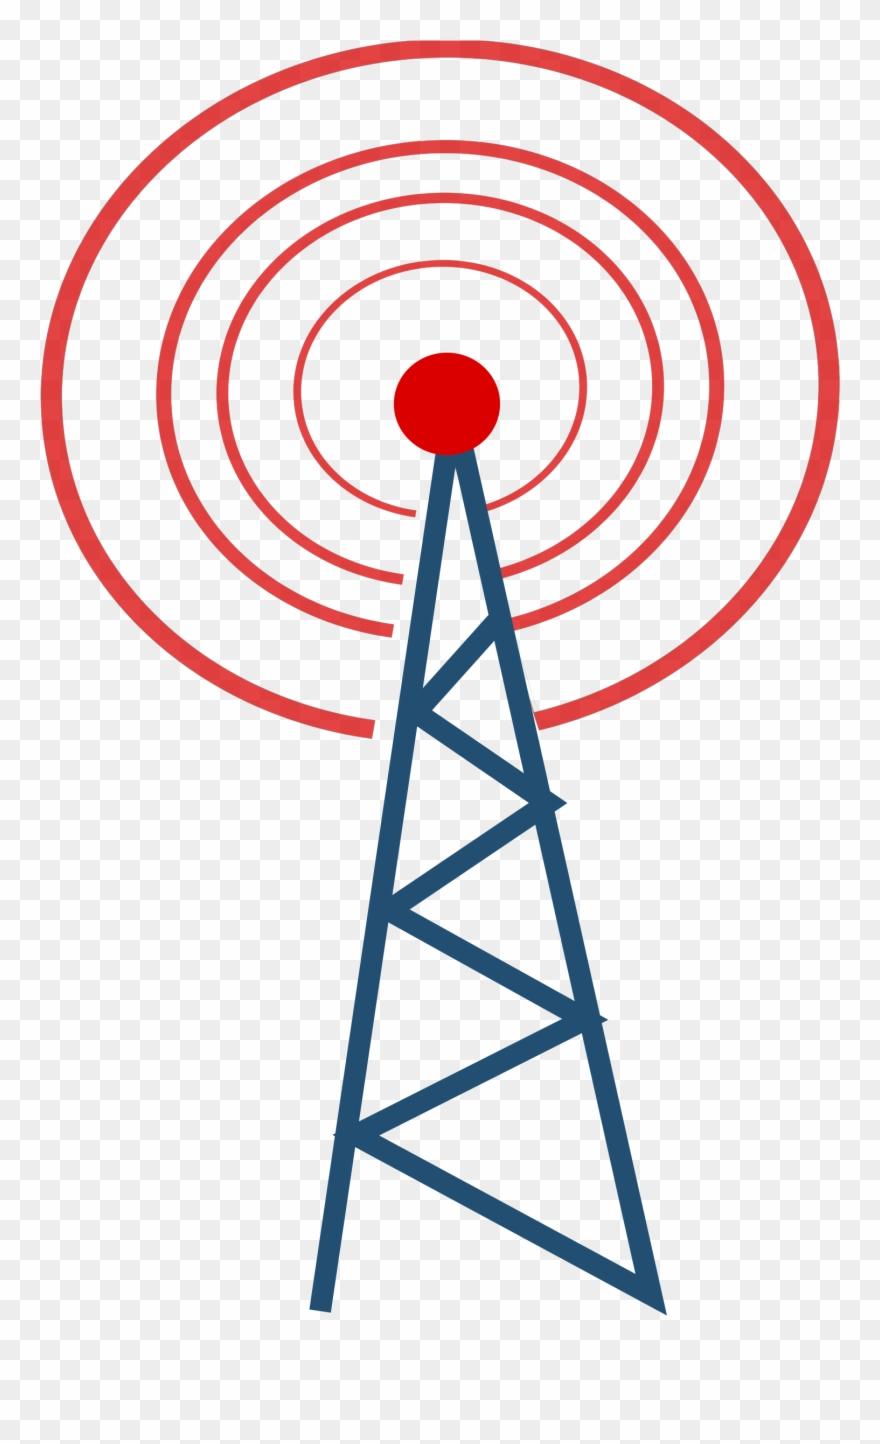 Telecom clipart jpg library library Towers Clipart Network Tower - Telecommunication Tower ... jpg library library